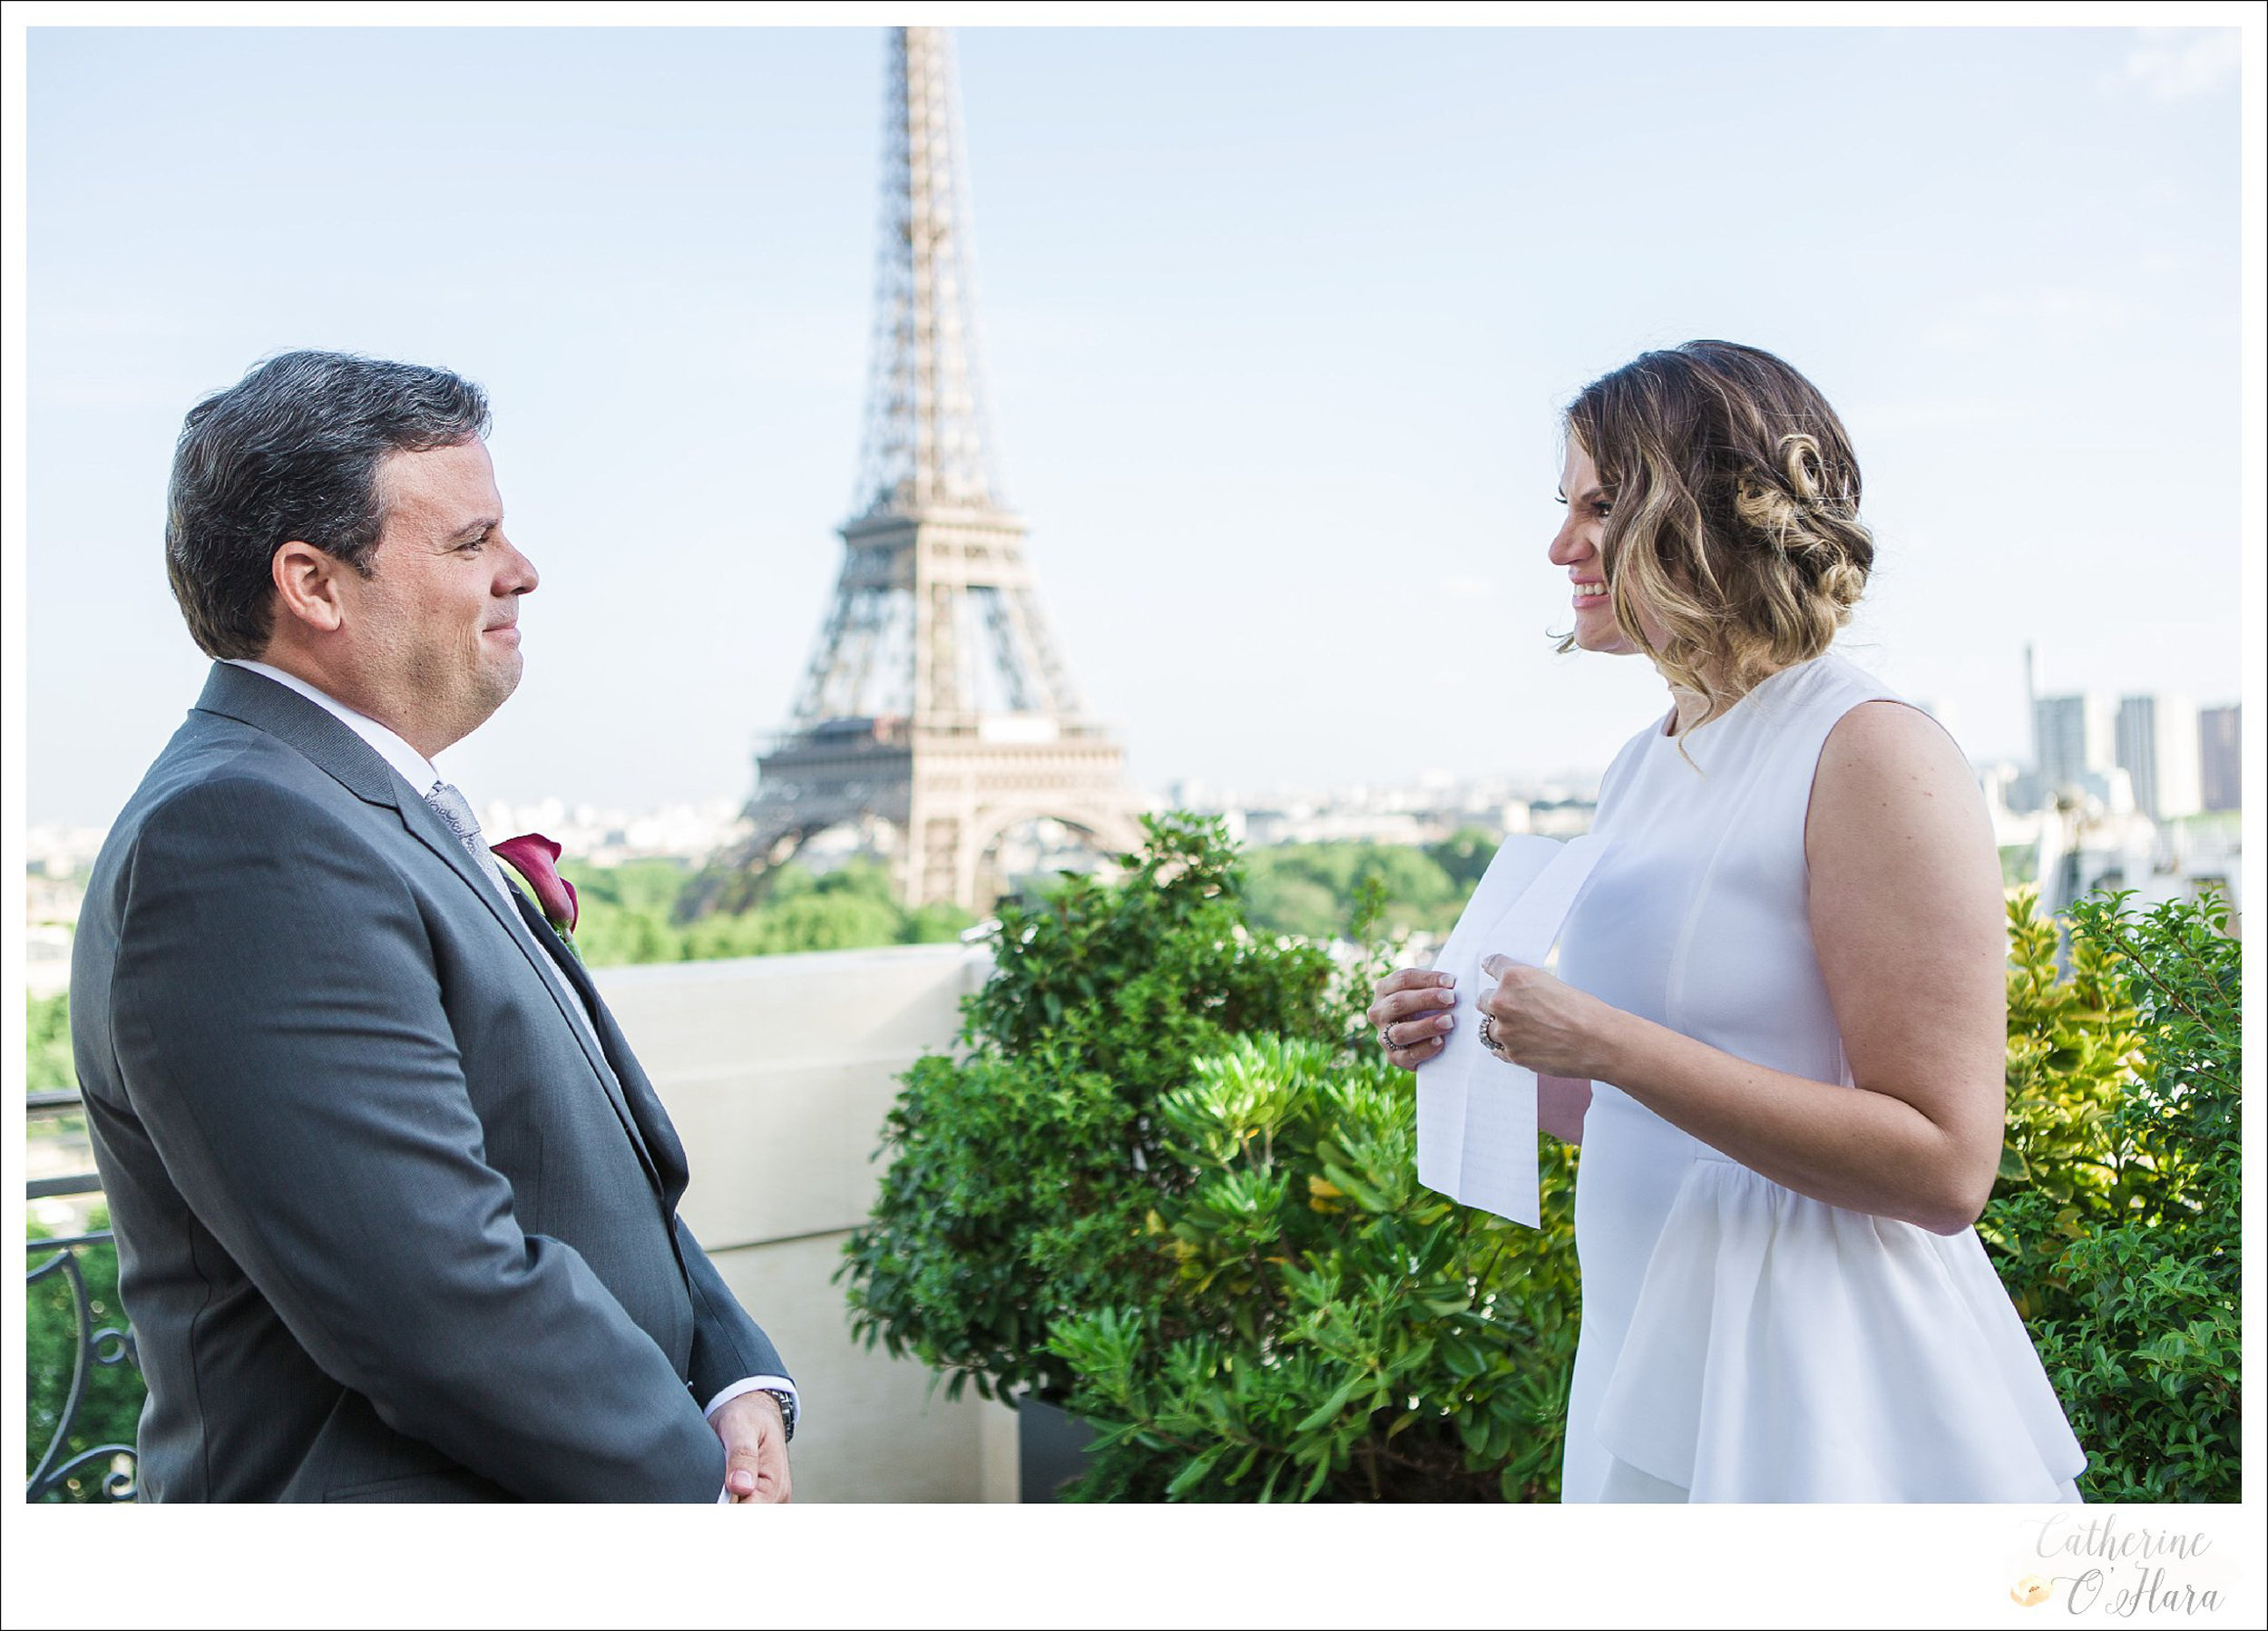 22-paris-france-elopement-photographer.jpg